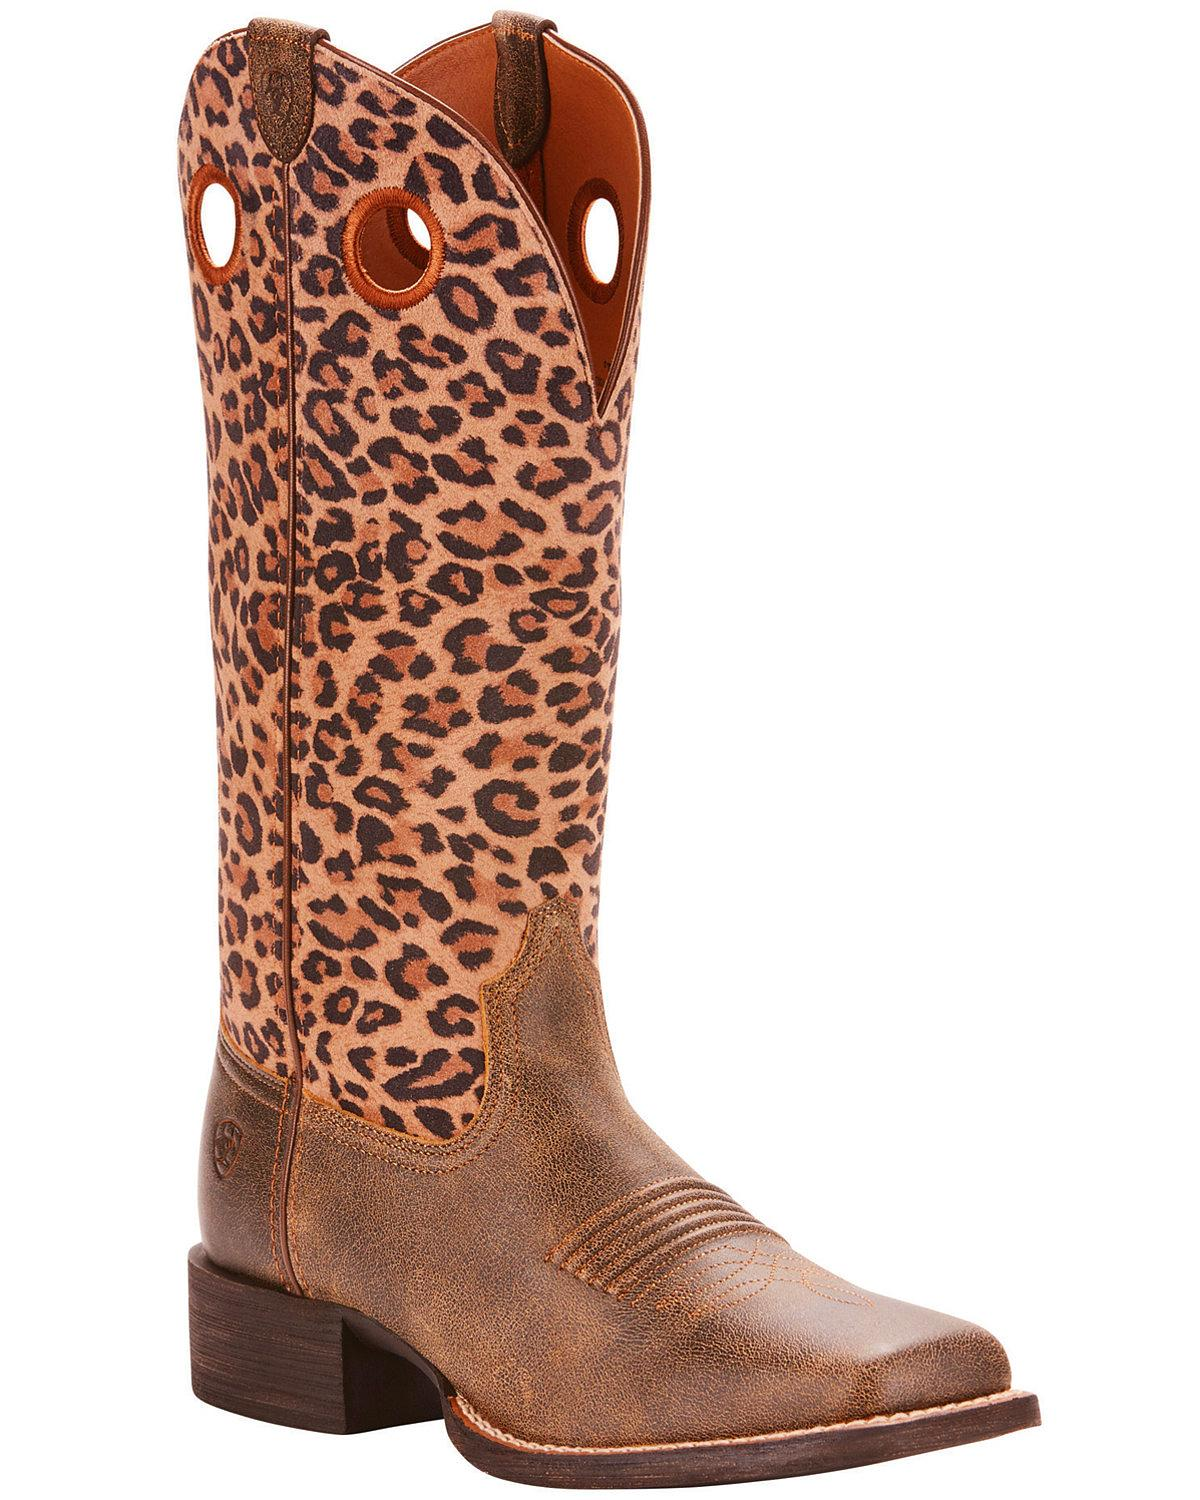 Ariat Women's Leopard Print Round Up Ryder Boot - Square Toe  - 10025039